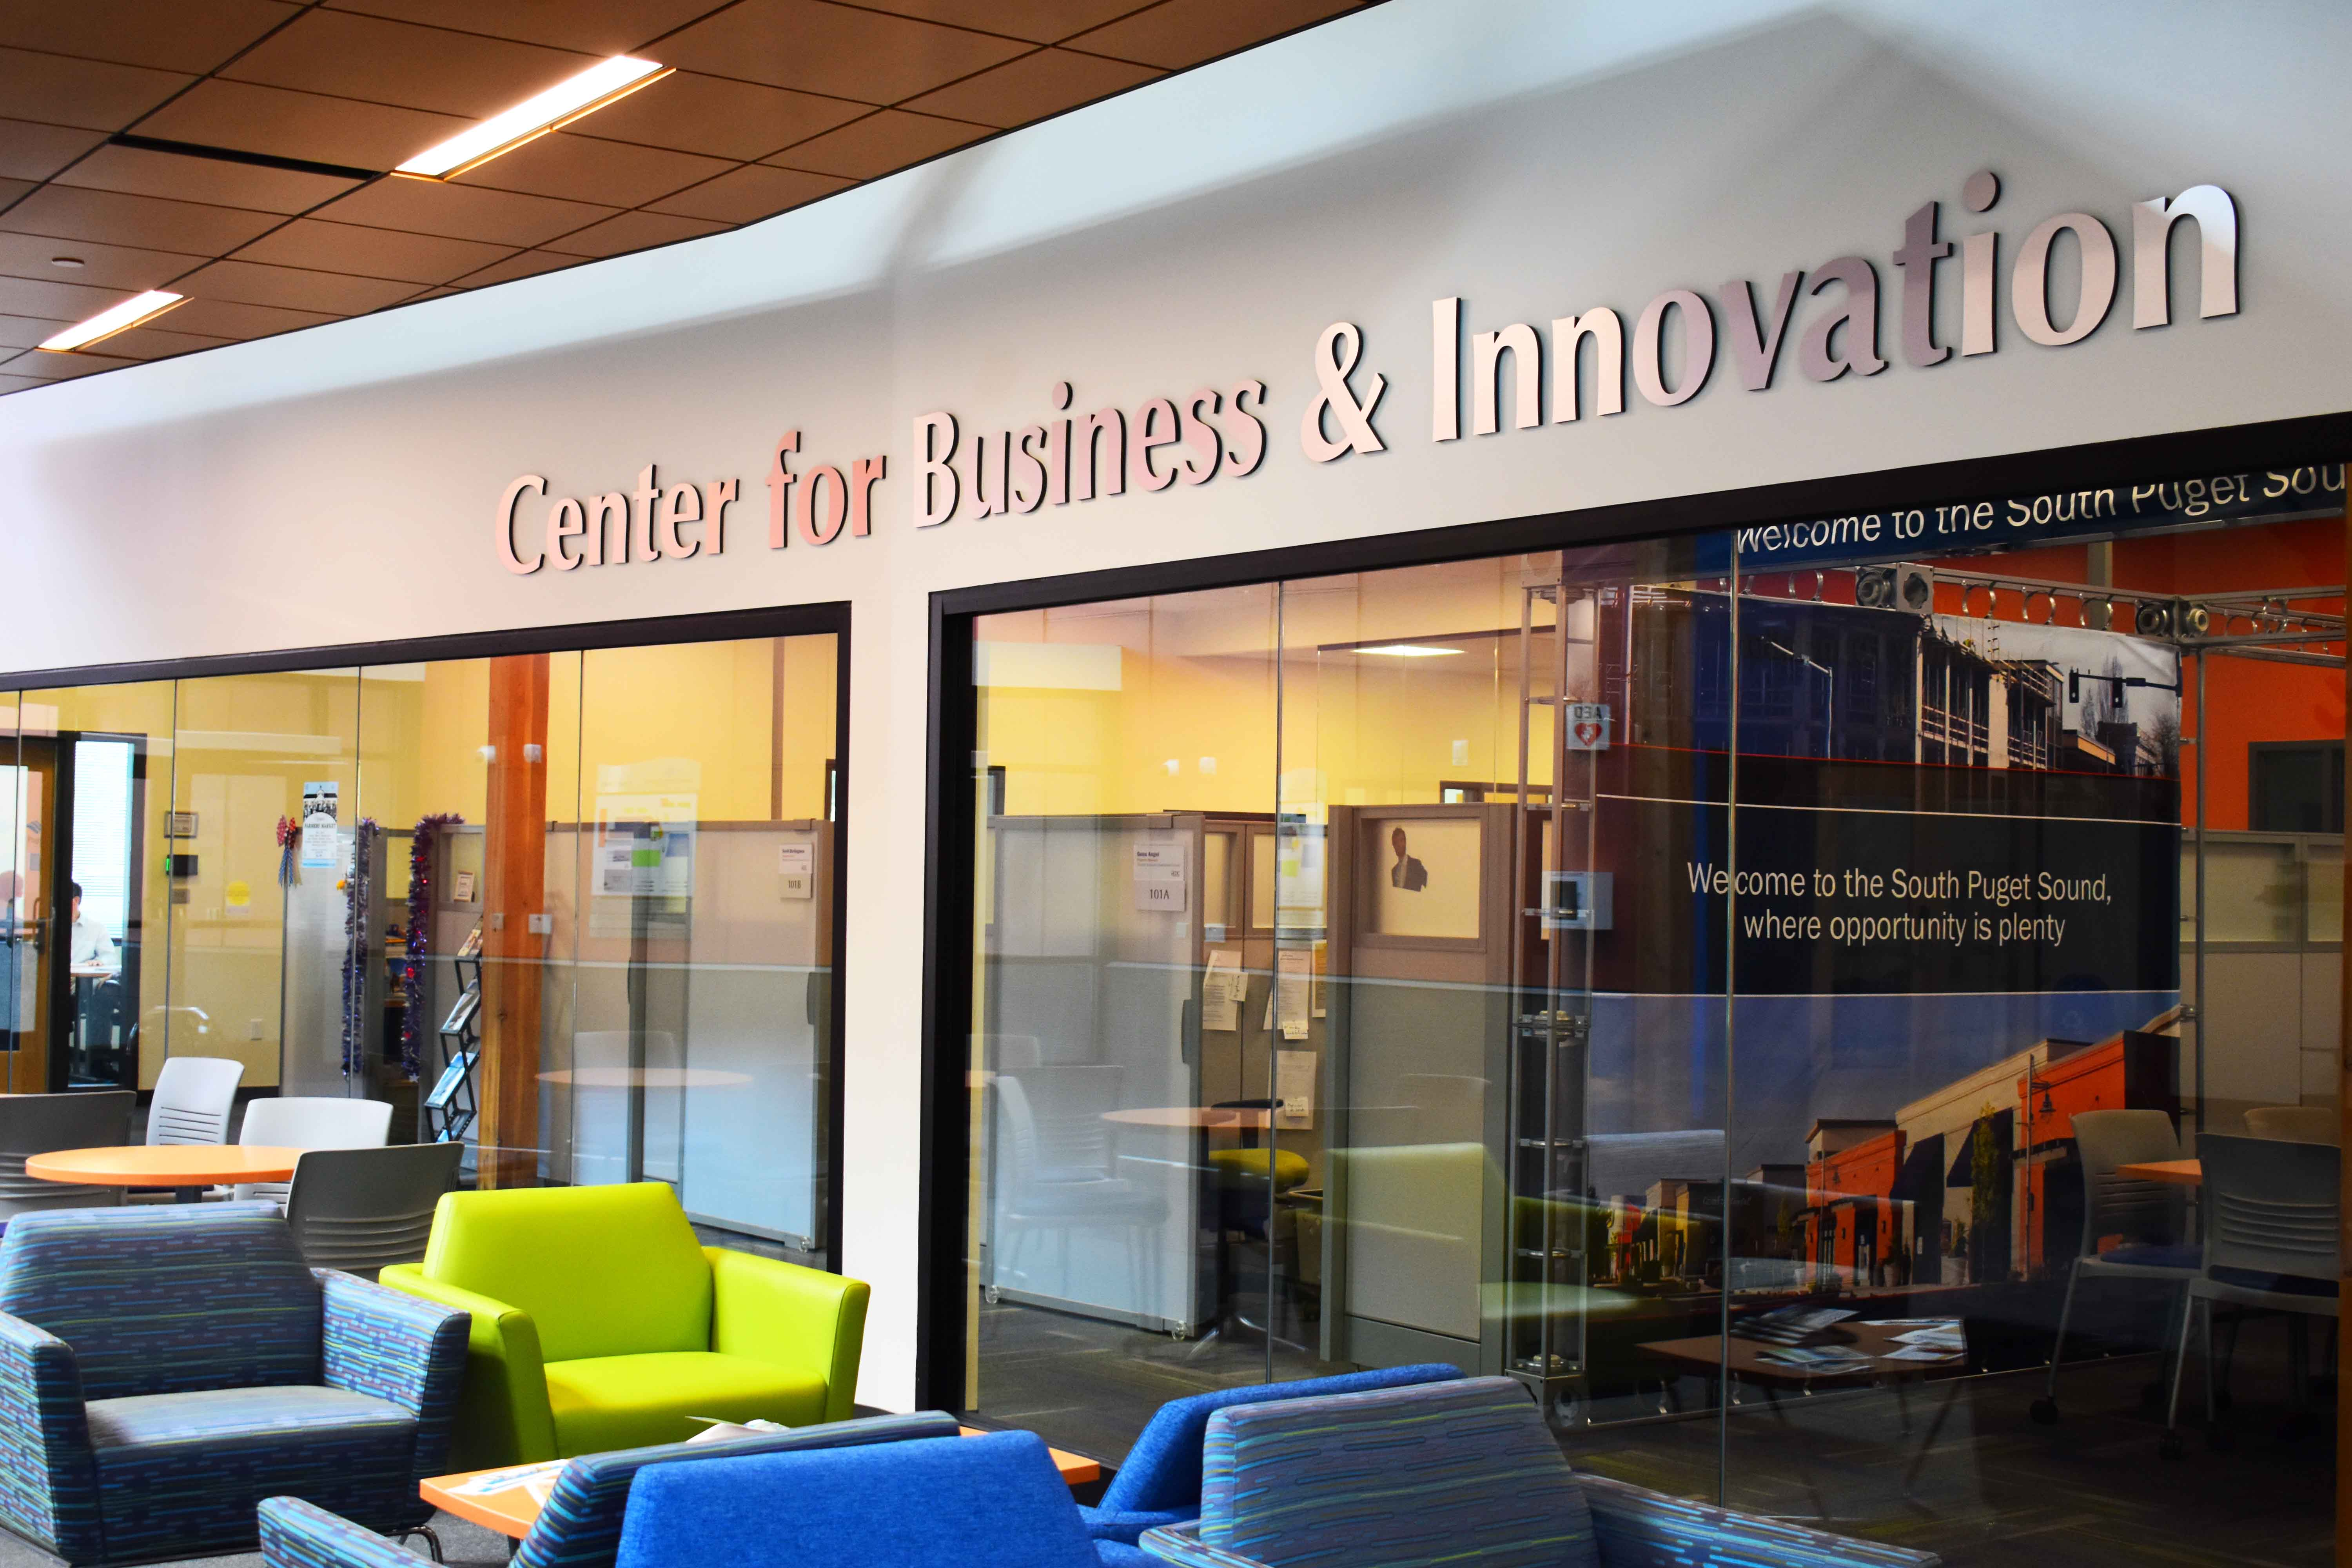 The lobby of the Center for Business and Innovation. There are empty chairs in front  of windows with the name of the center above them.